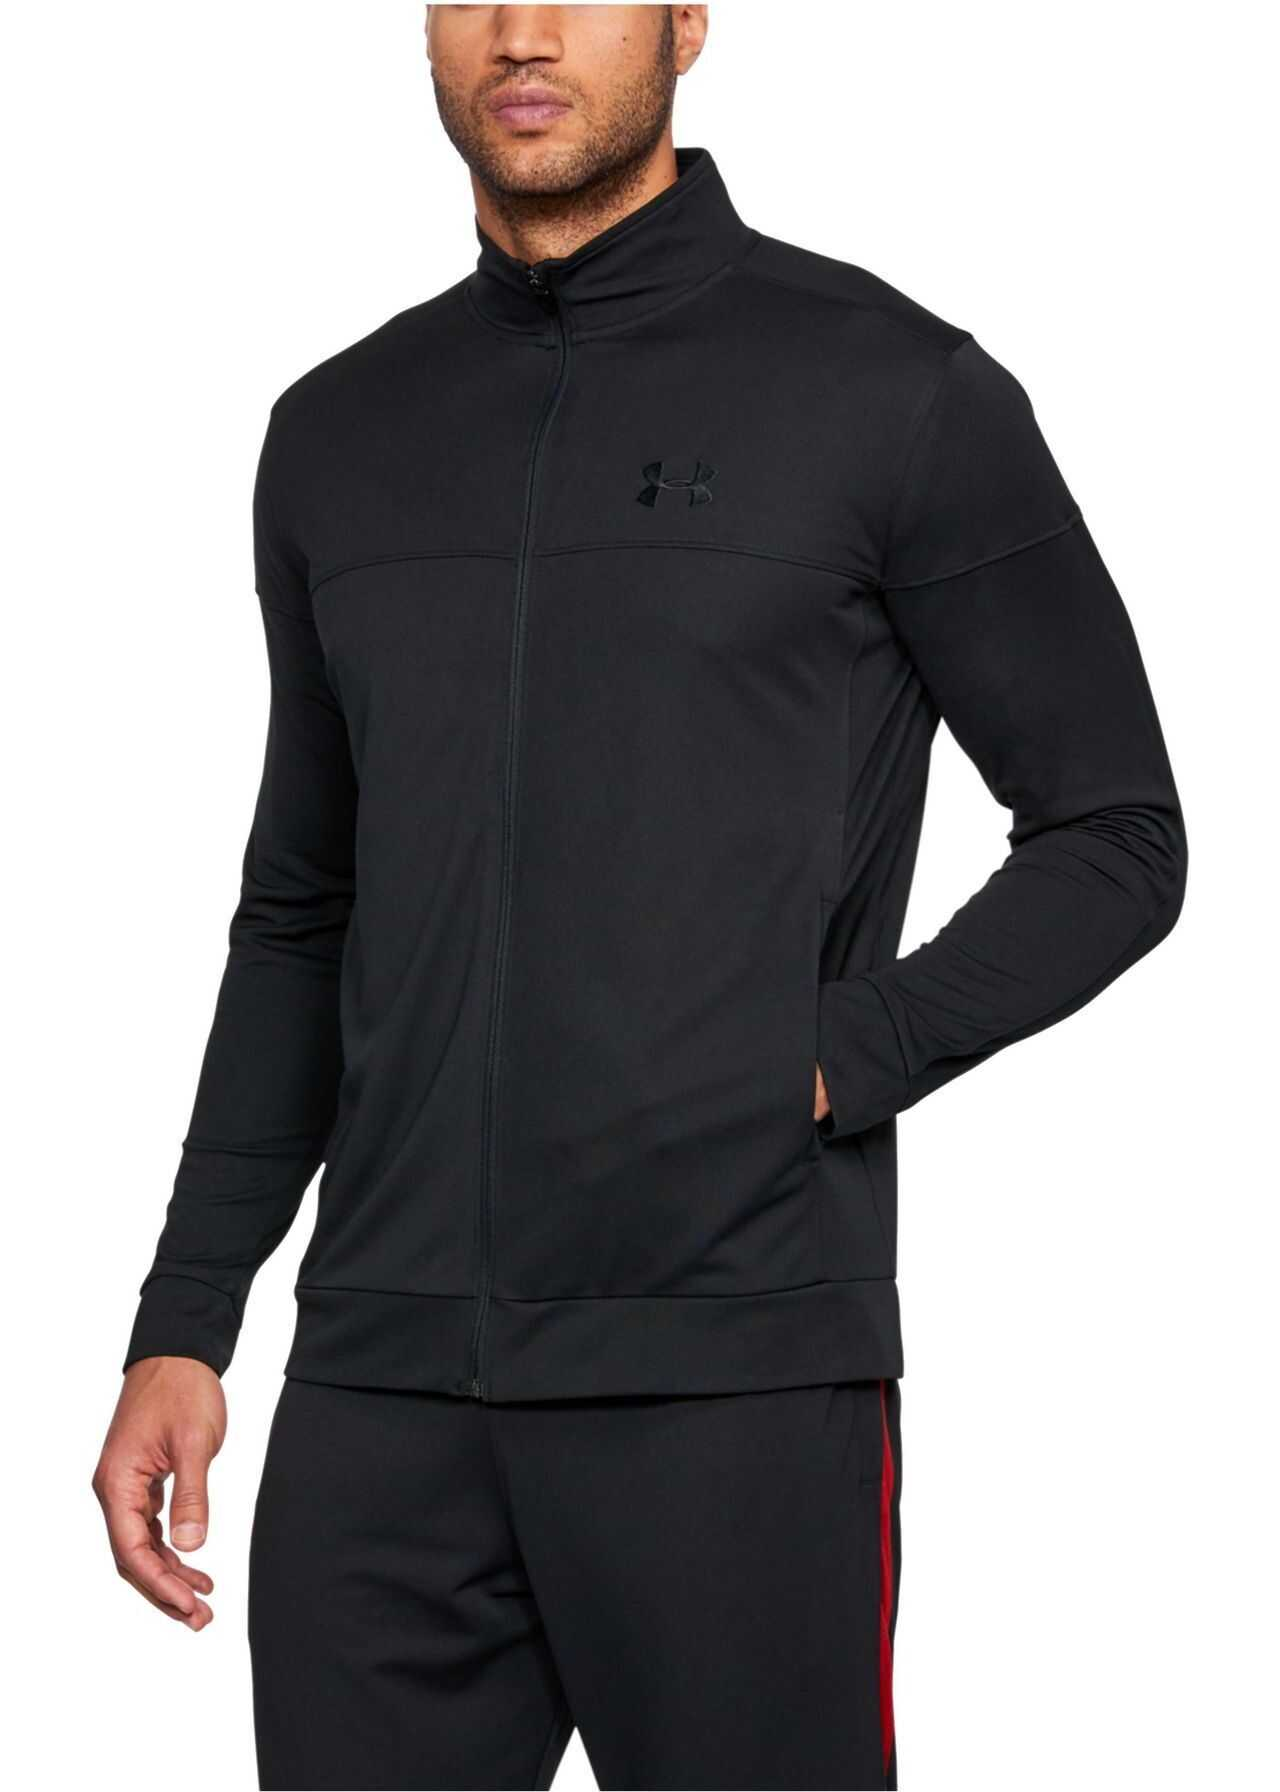 Under Armour Sporstyle Pique Track Jacket N/A